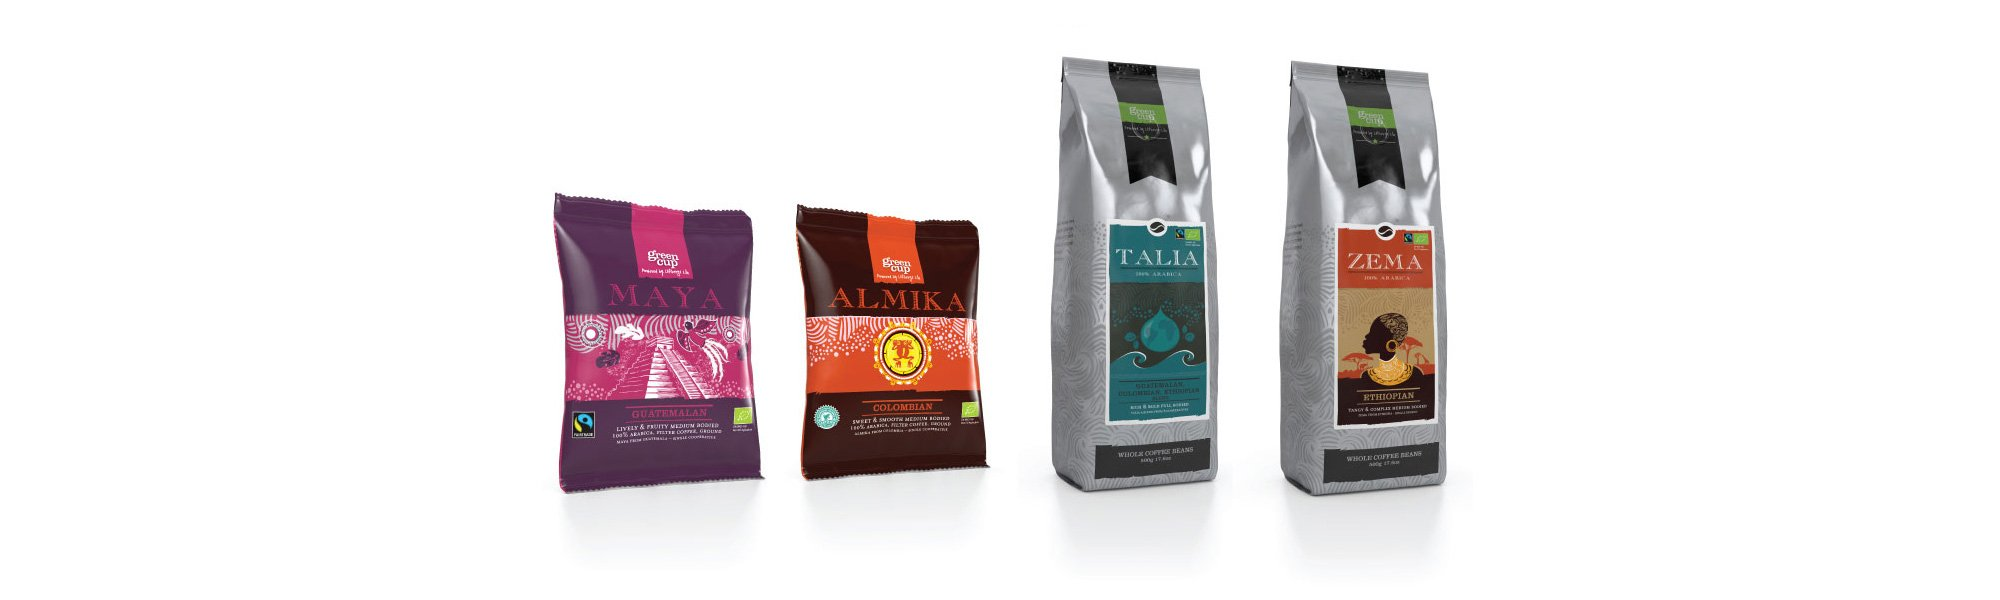 Greencup packaging design